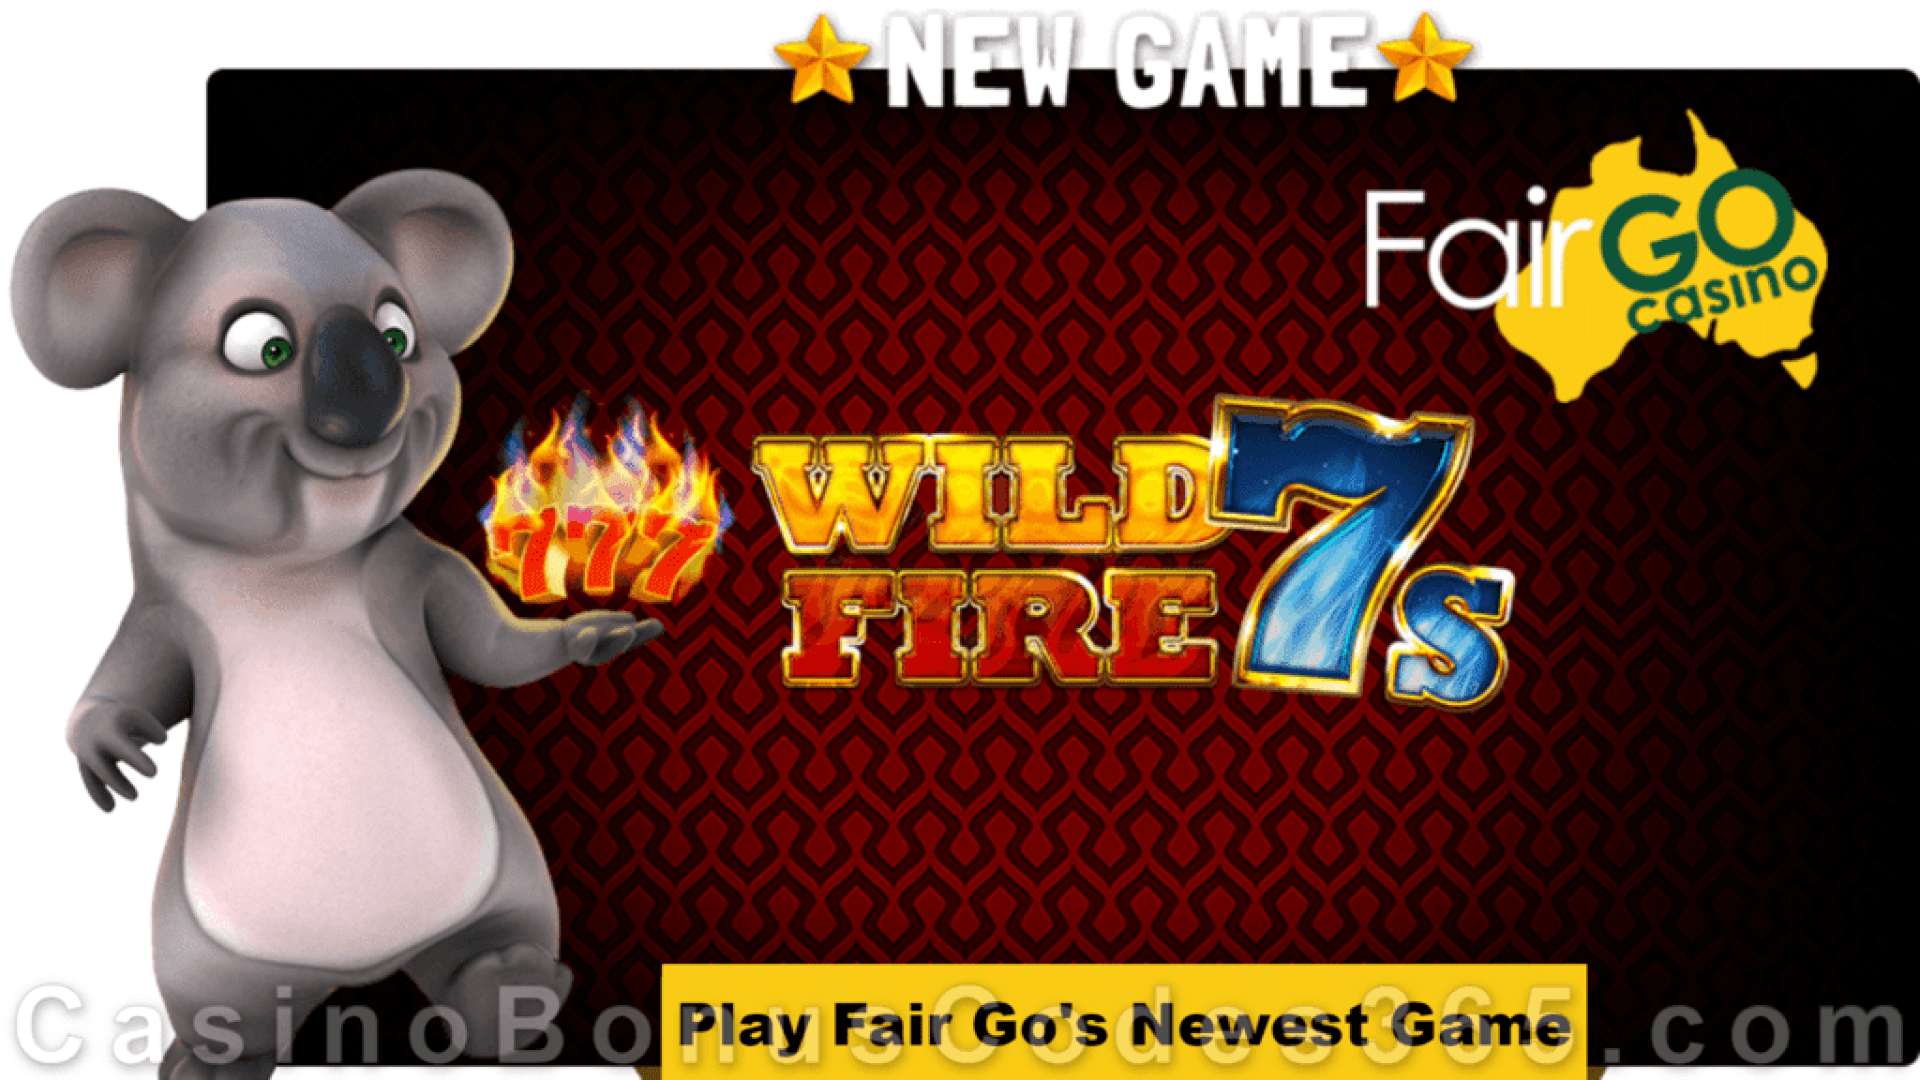 Fair Go Casino New RTG Game Wild Fire 7s is LIVE